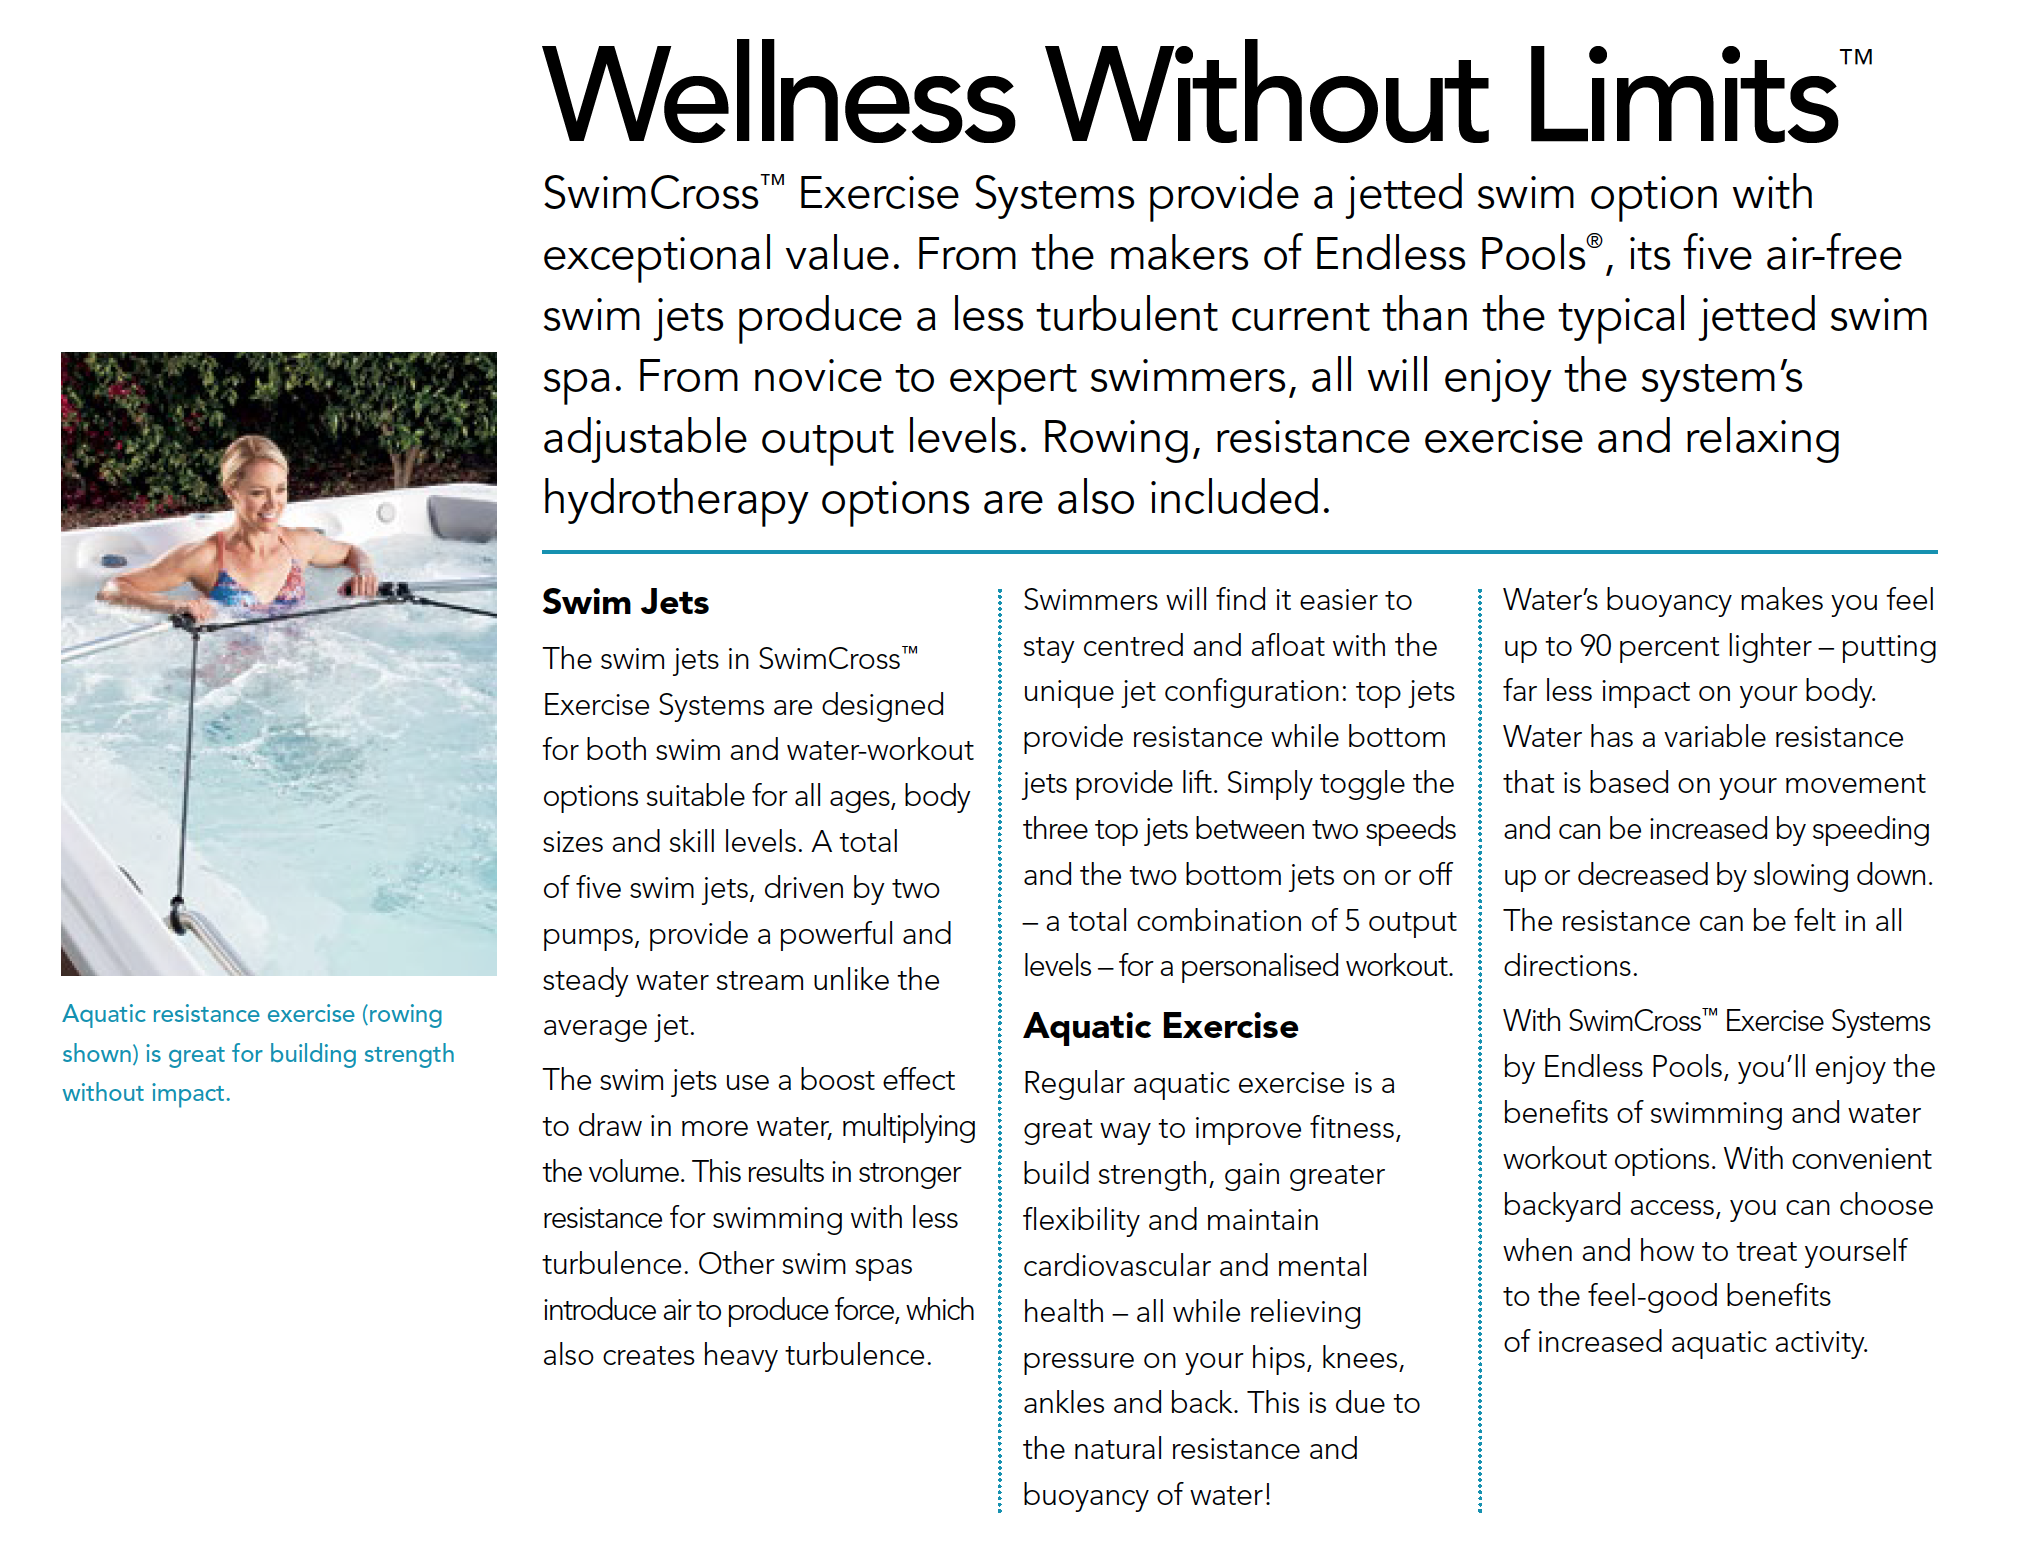 swim-spa-nz-endless-pools-2020-04-18-at-9.55.06-am-12.png